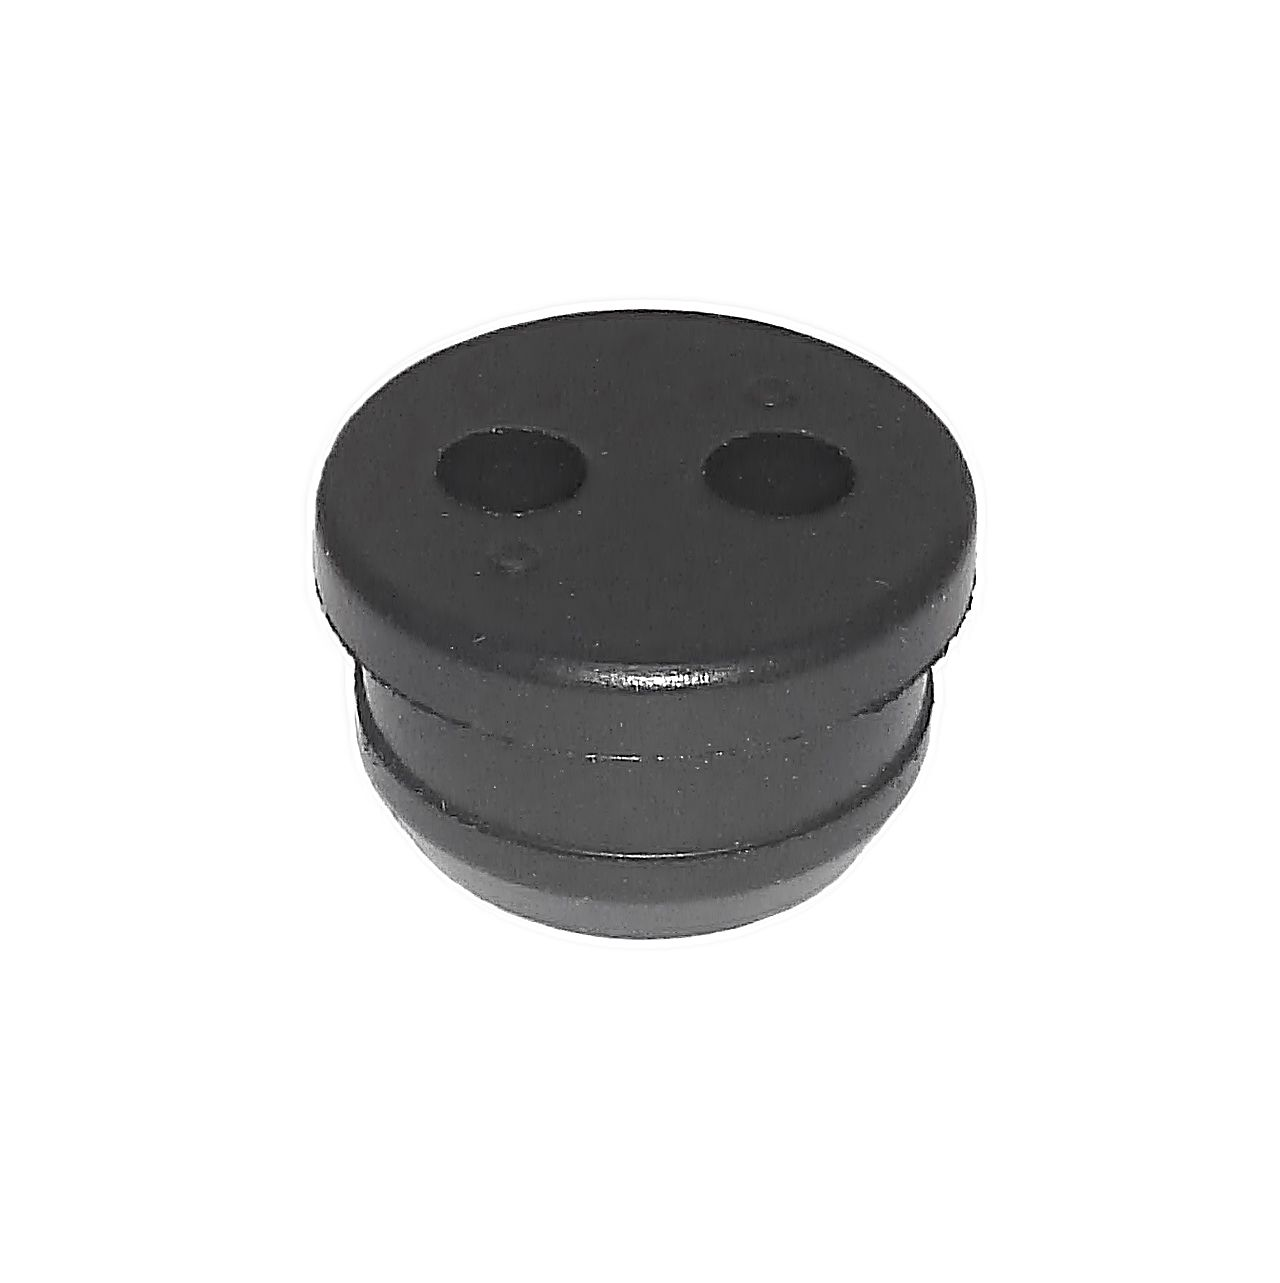 Echo Chainsaw Parts And Spares Fuel Filter Repair Tank Seal Grommet Two Hole 13211544330 132115 44330